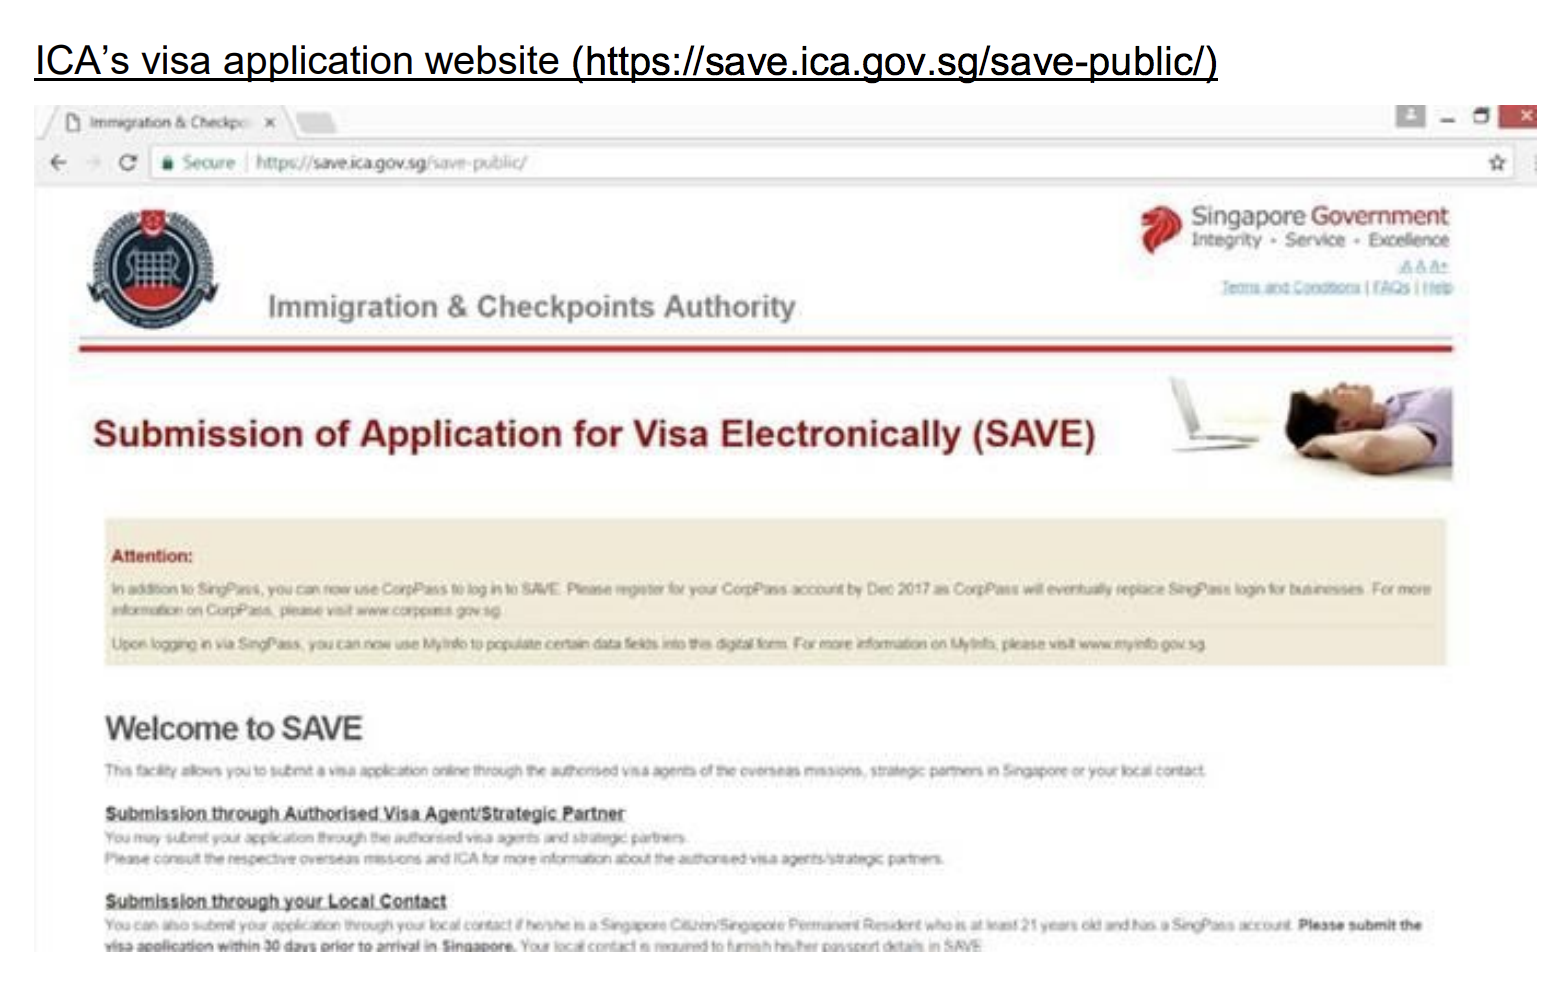 ICA's visa application website. Photo courtesy: ICA